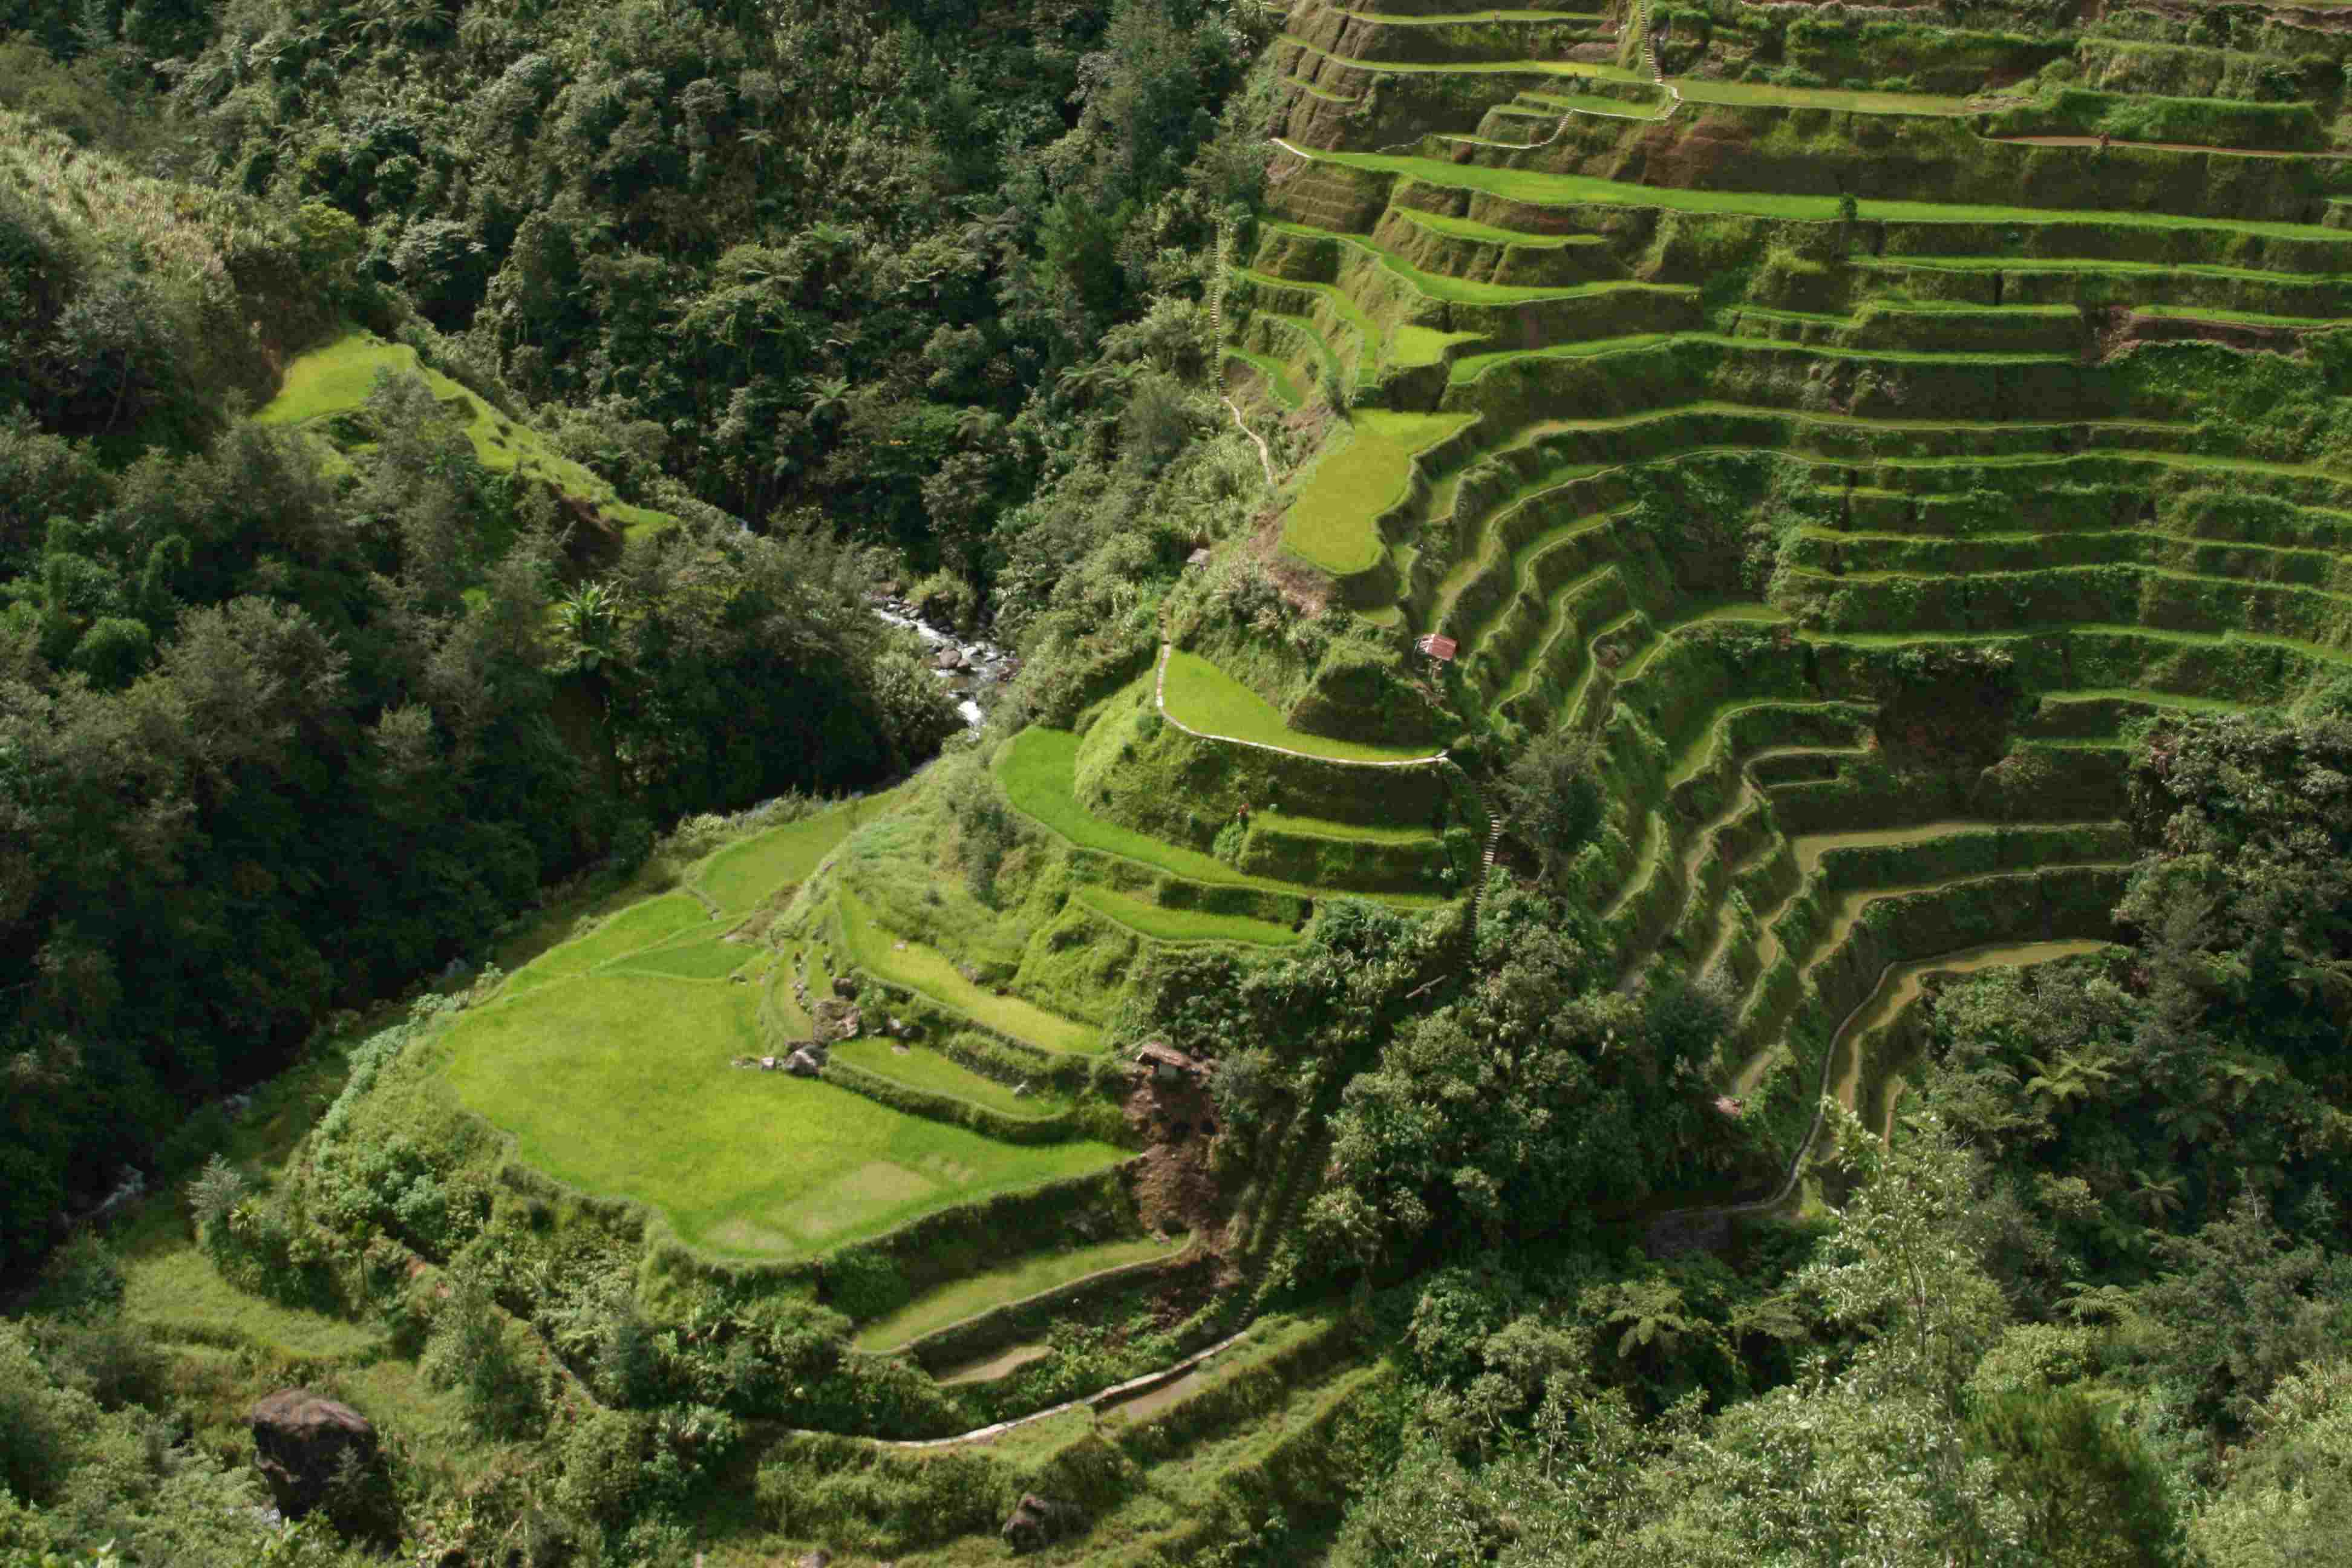 Closer view of the The Banaue Rice Terraces - Surreal places to visit